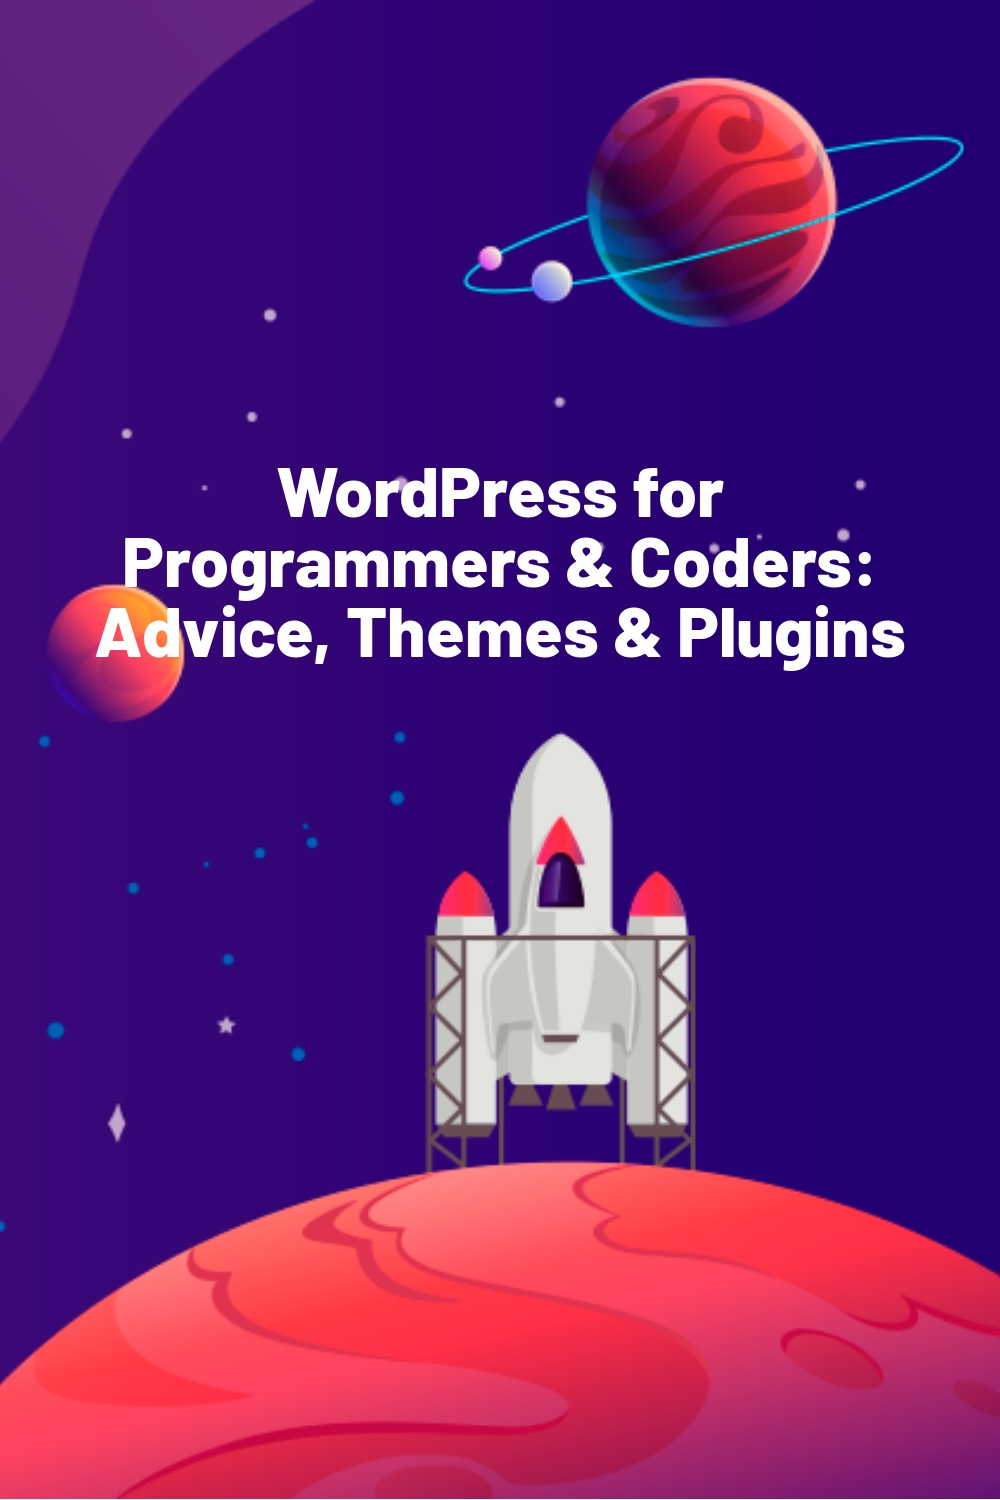 WordPress for Programmers & Coders: Advice, Themes & Plugins